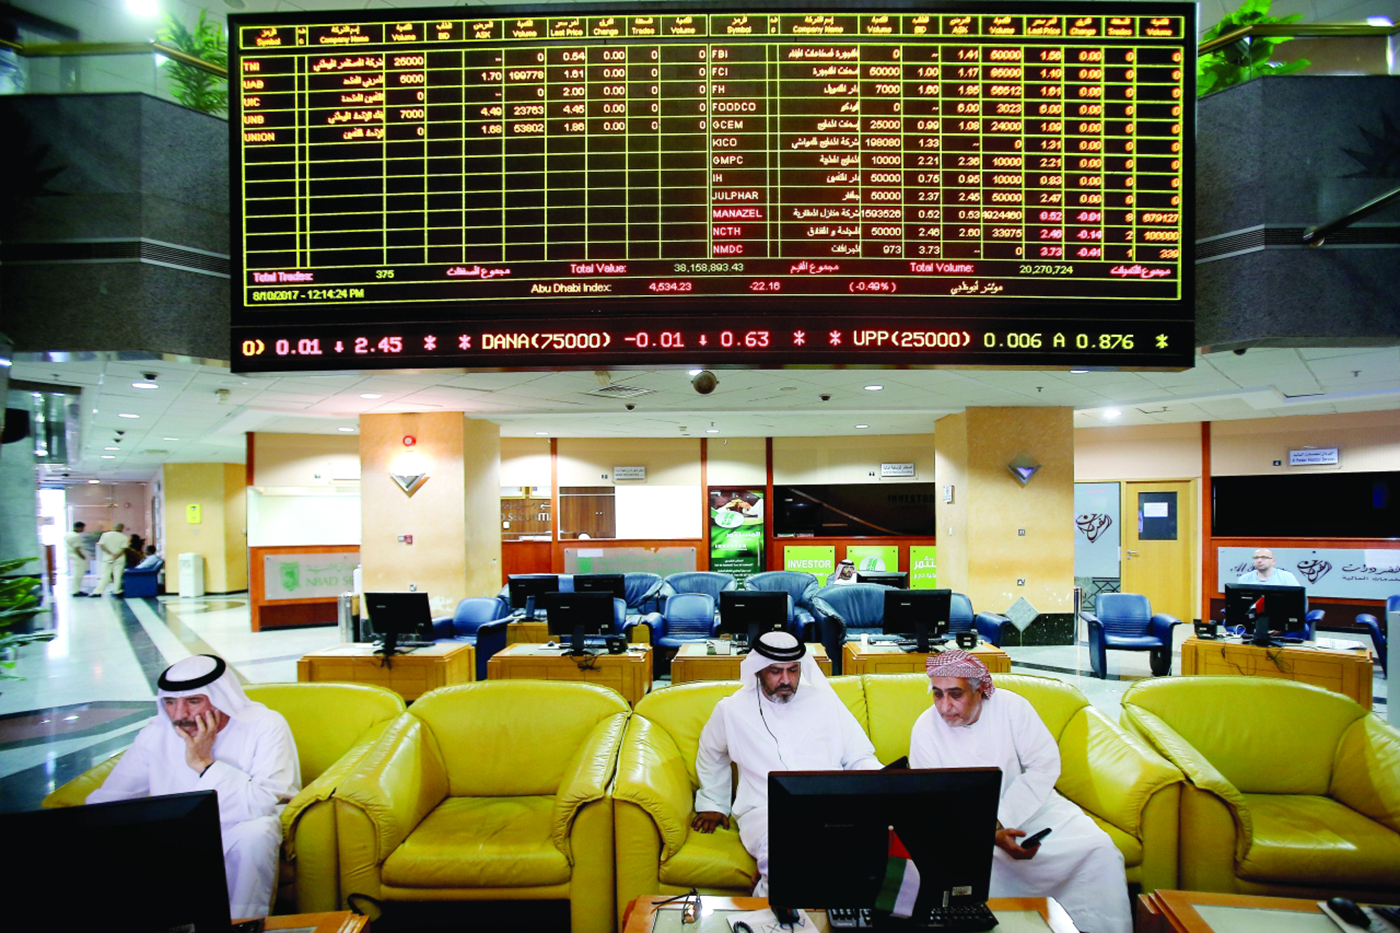 National companies overcome global challenges with strong profits